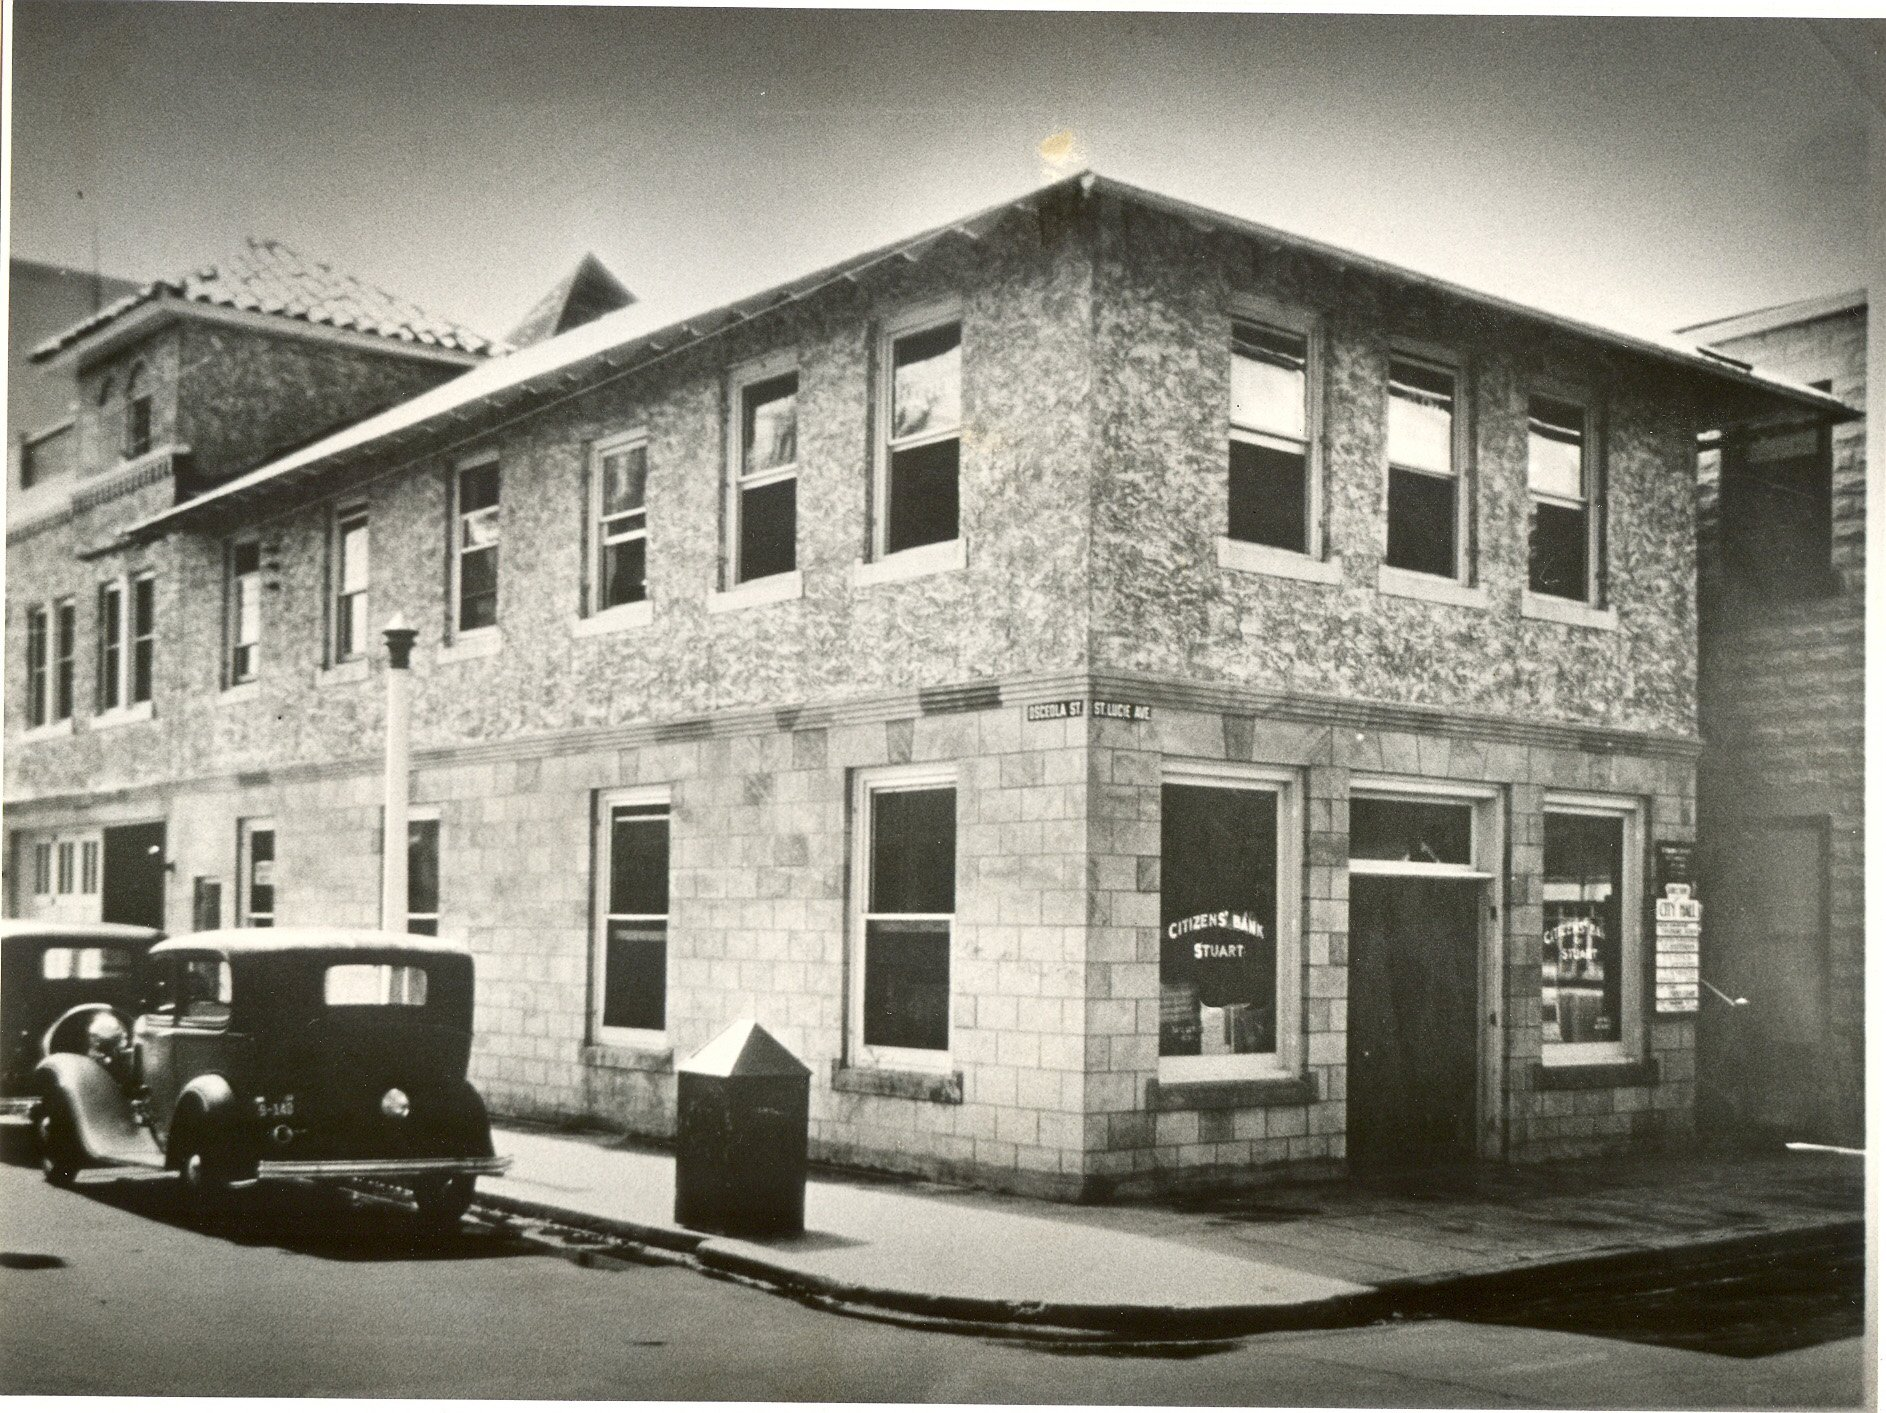 CitizensBankOfStuart_1933R(Site now Fellowship Hall)--seacoast history copy